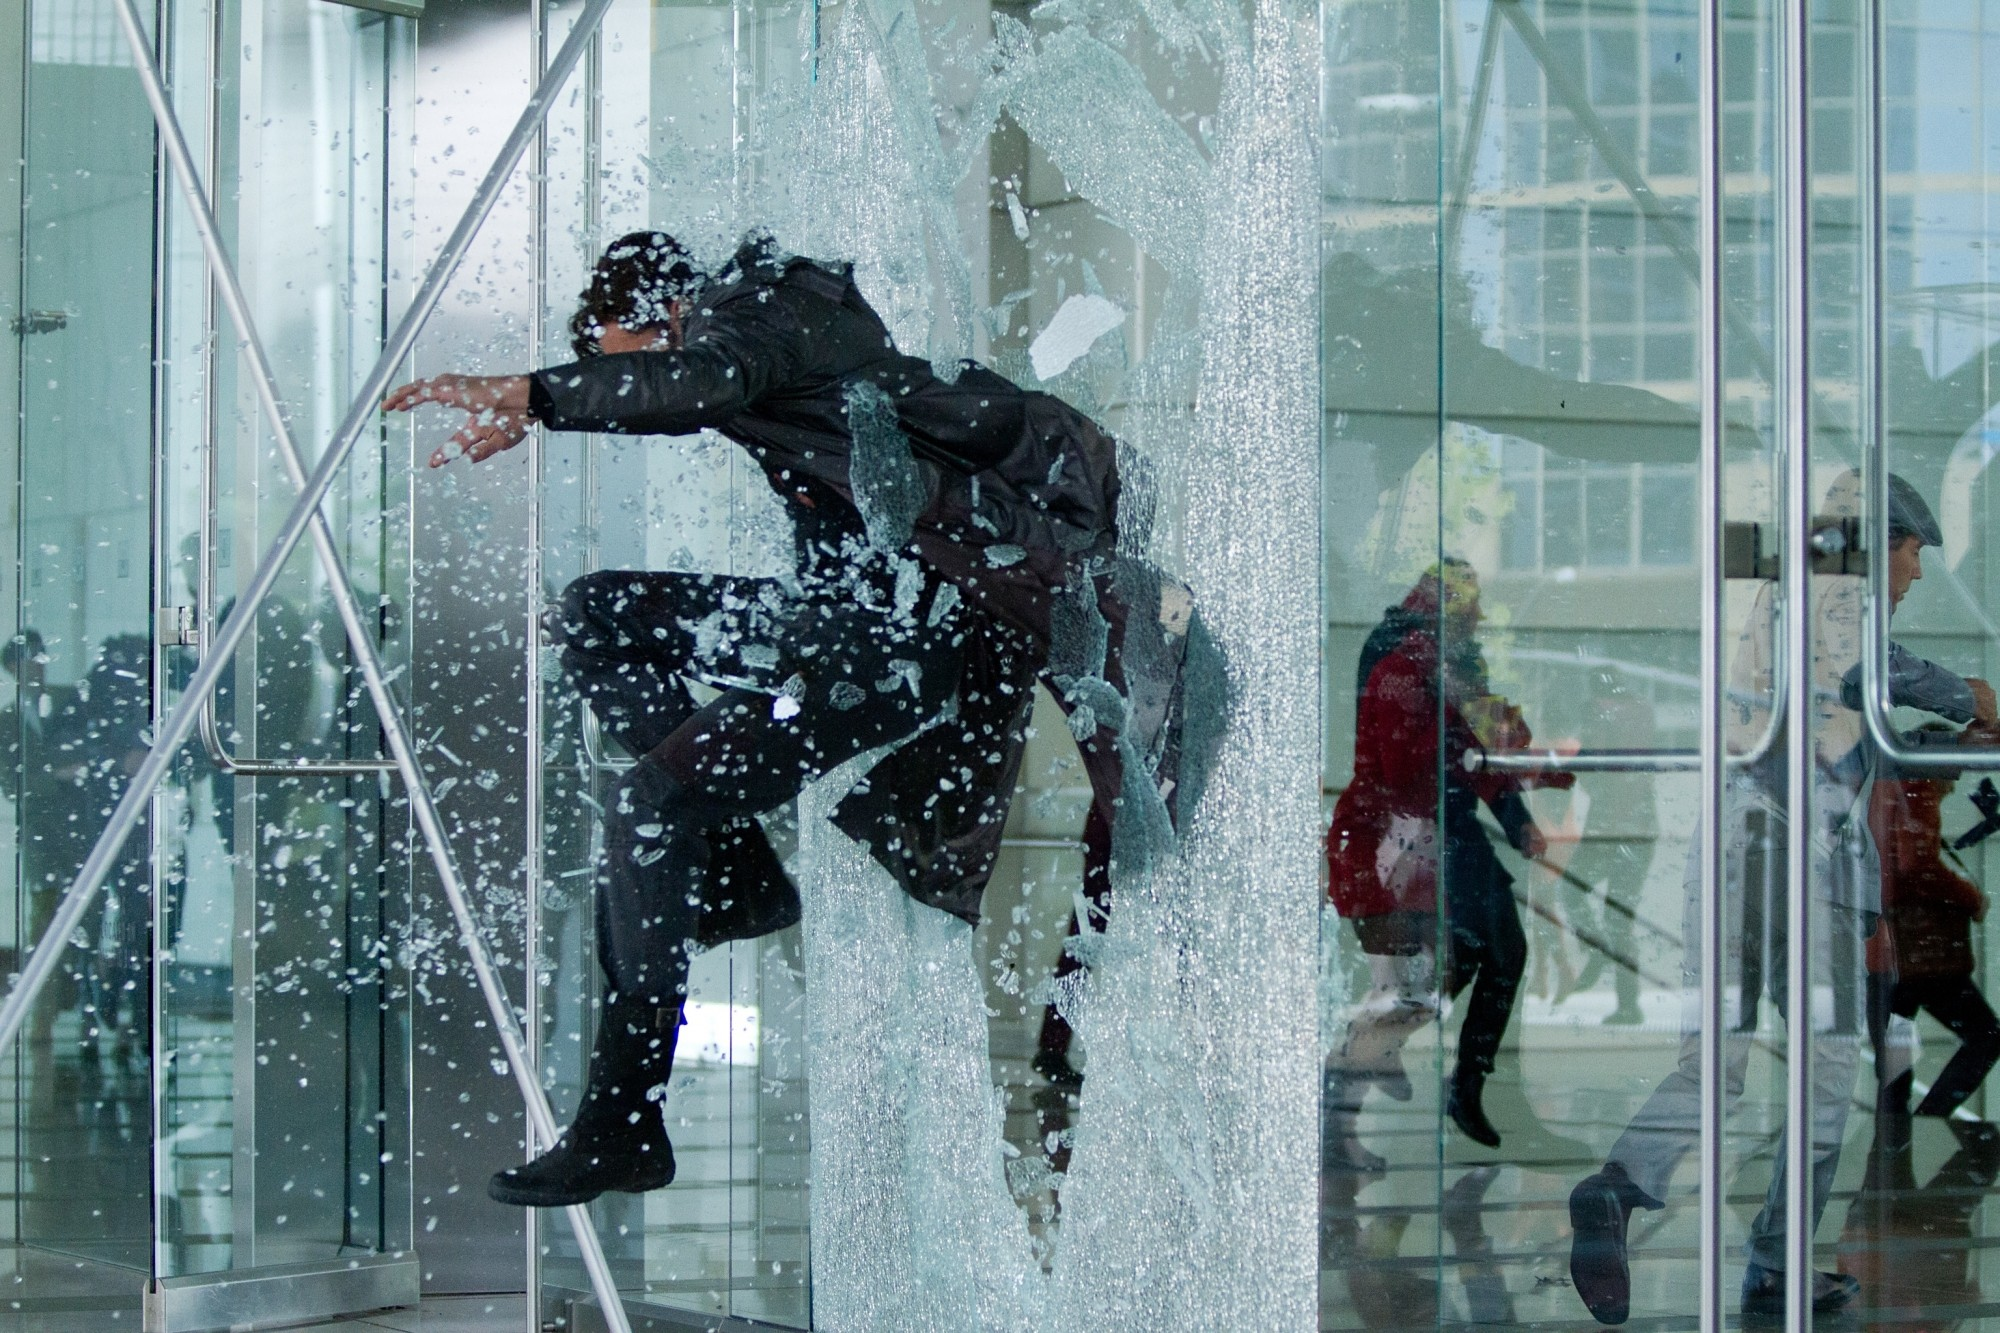 John Harrison leaping through a window